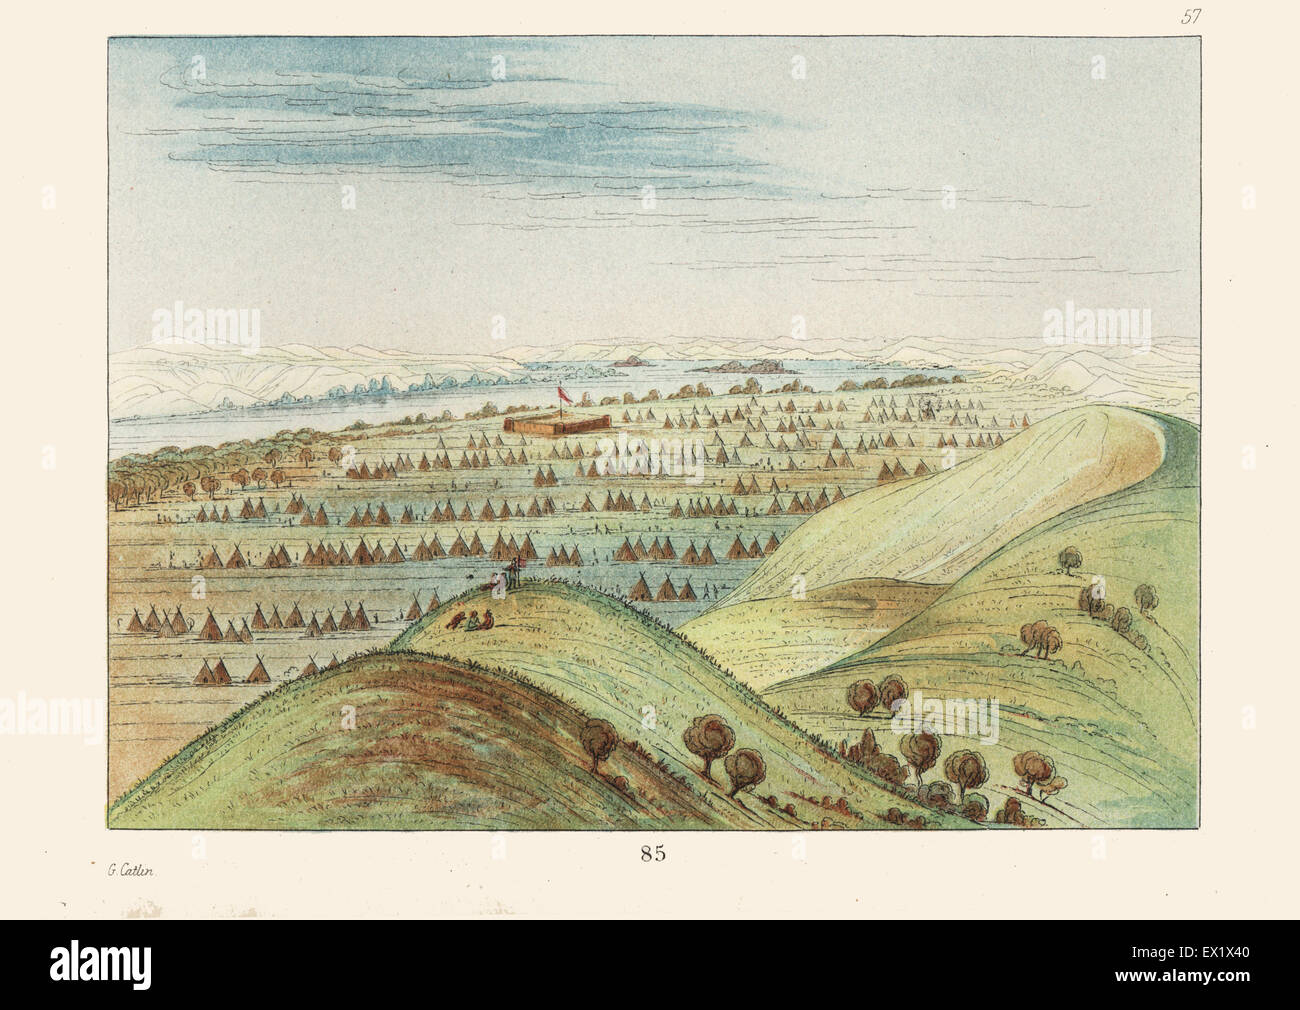 Sioux encampment of 600 tents and lodges around Fort Pierre, of the American Fur Company, Missouri. Handcoloured - Stock Image